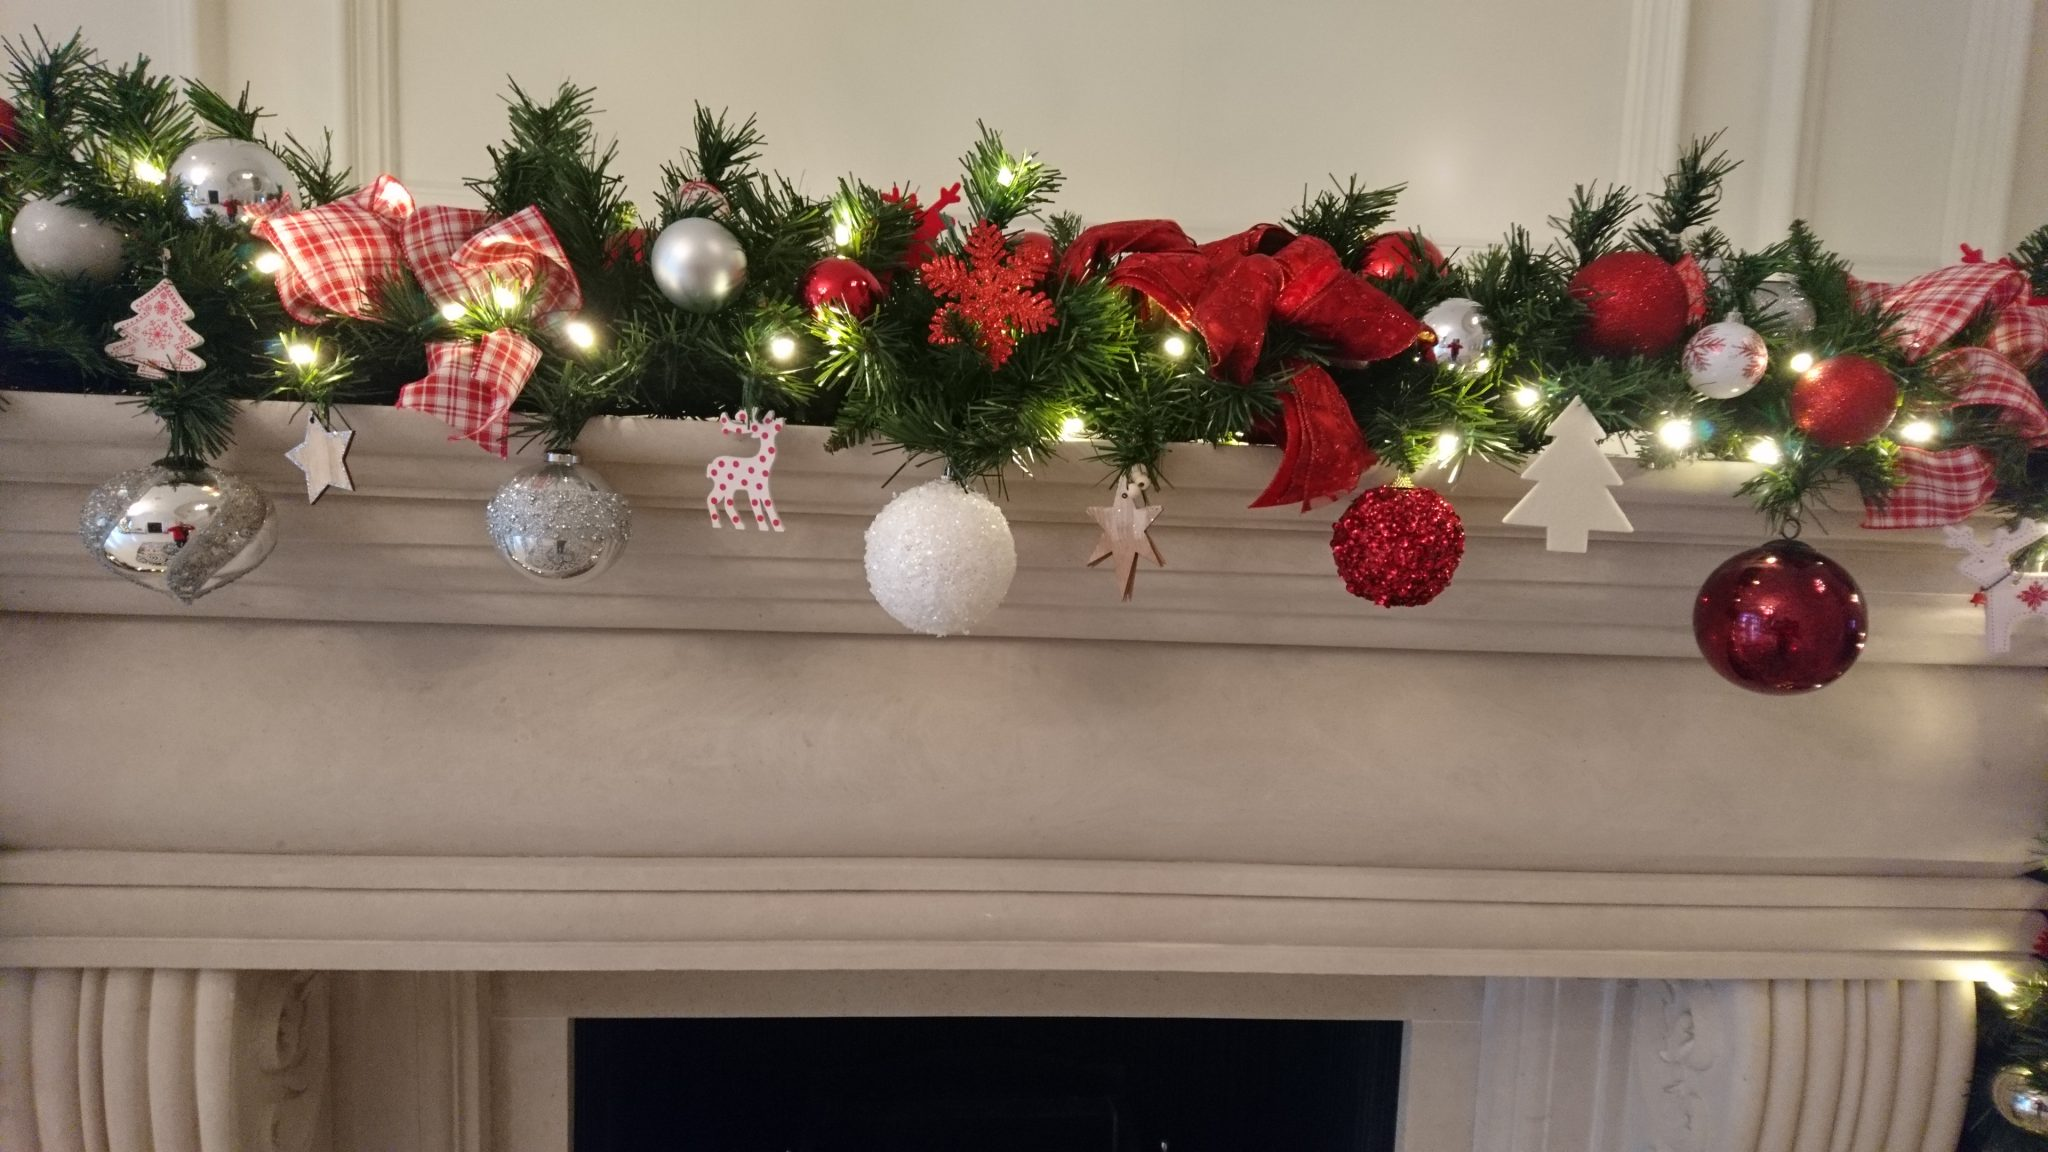 gallery - Professional Christmas Decorators